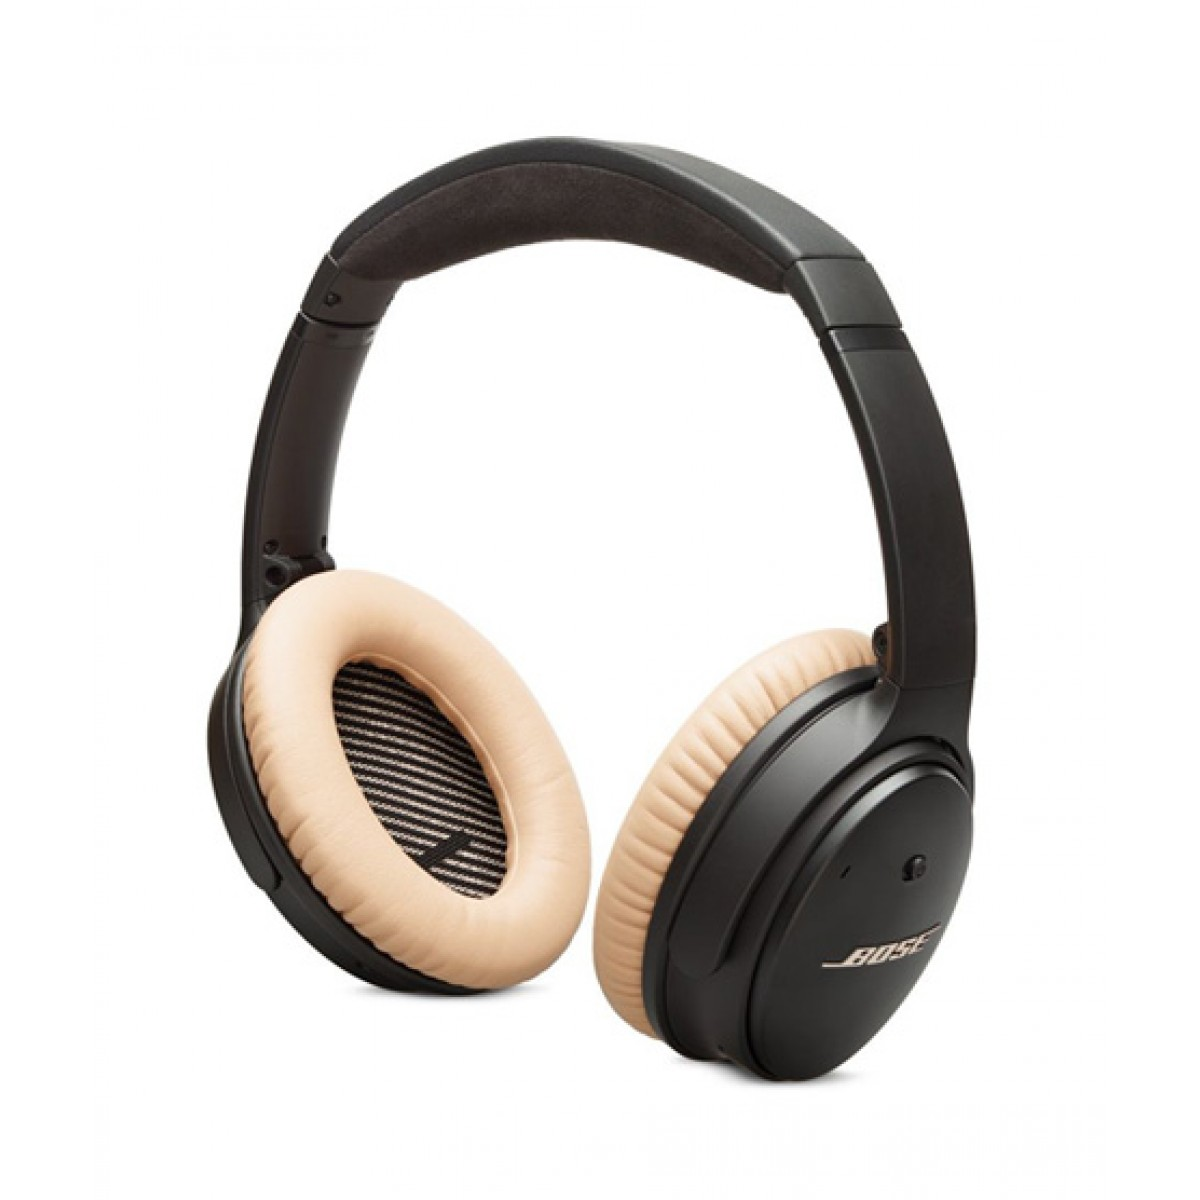 fb945c381bf Bose QuietComfort 25 Headphones Price in Pakistan | Buy Bose QC25 Acoustic  Noise Headphones Black/Gold For Apple Devices | iShopping.pk